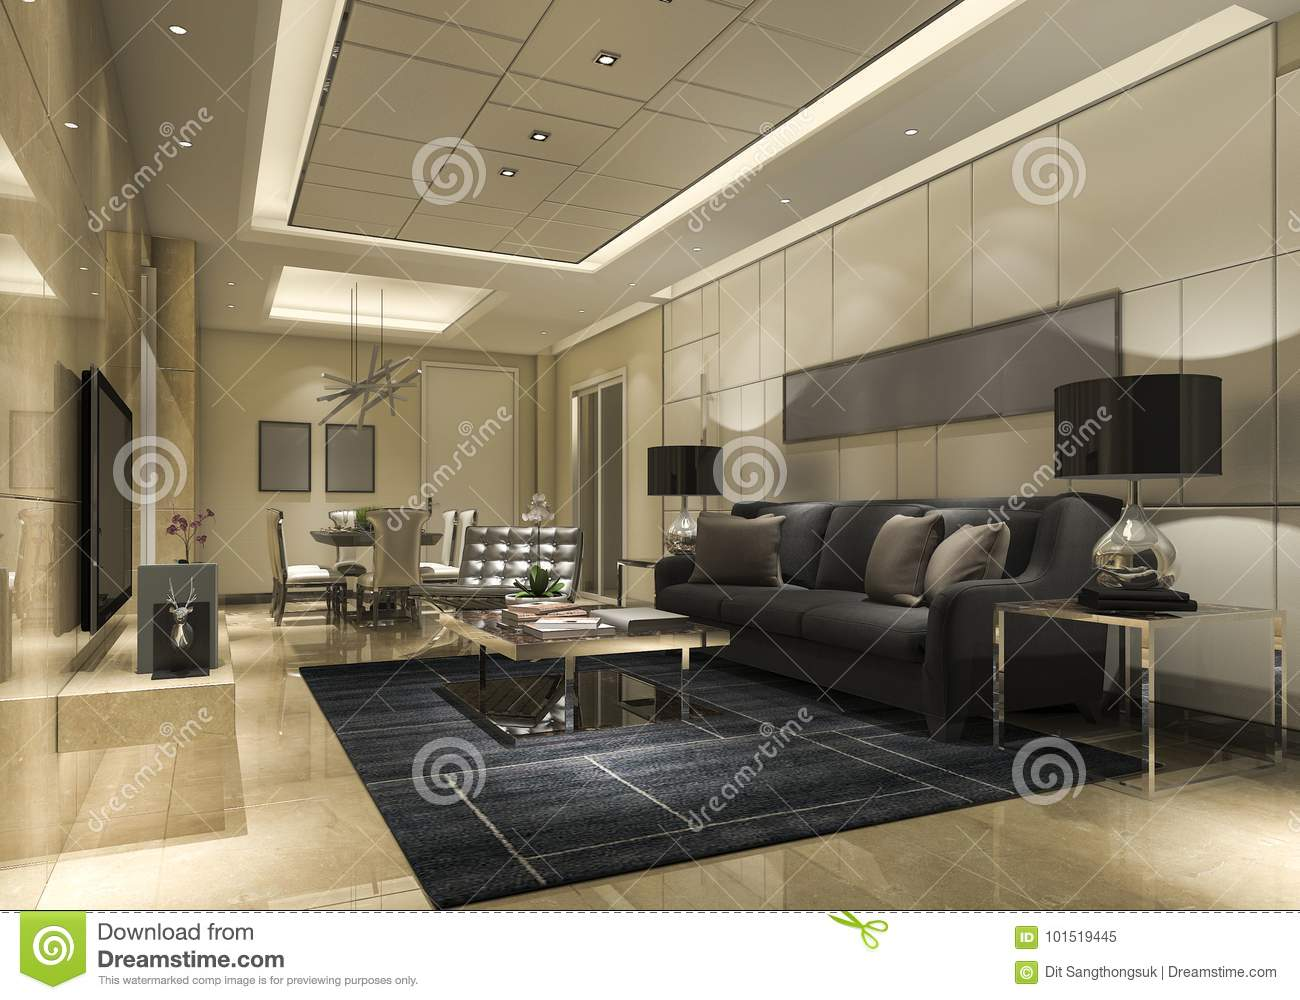 3d Rendering Luxury And Modern Living Room With Golden Wall And Reflect Tile Stock Illustration Illustration Of Indoor Classic 101519445